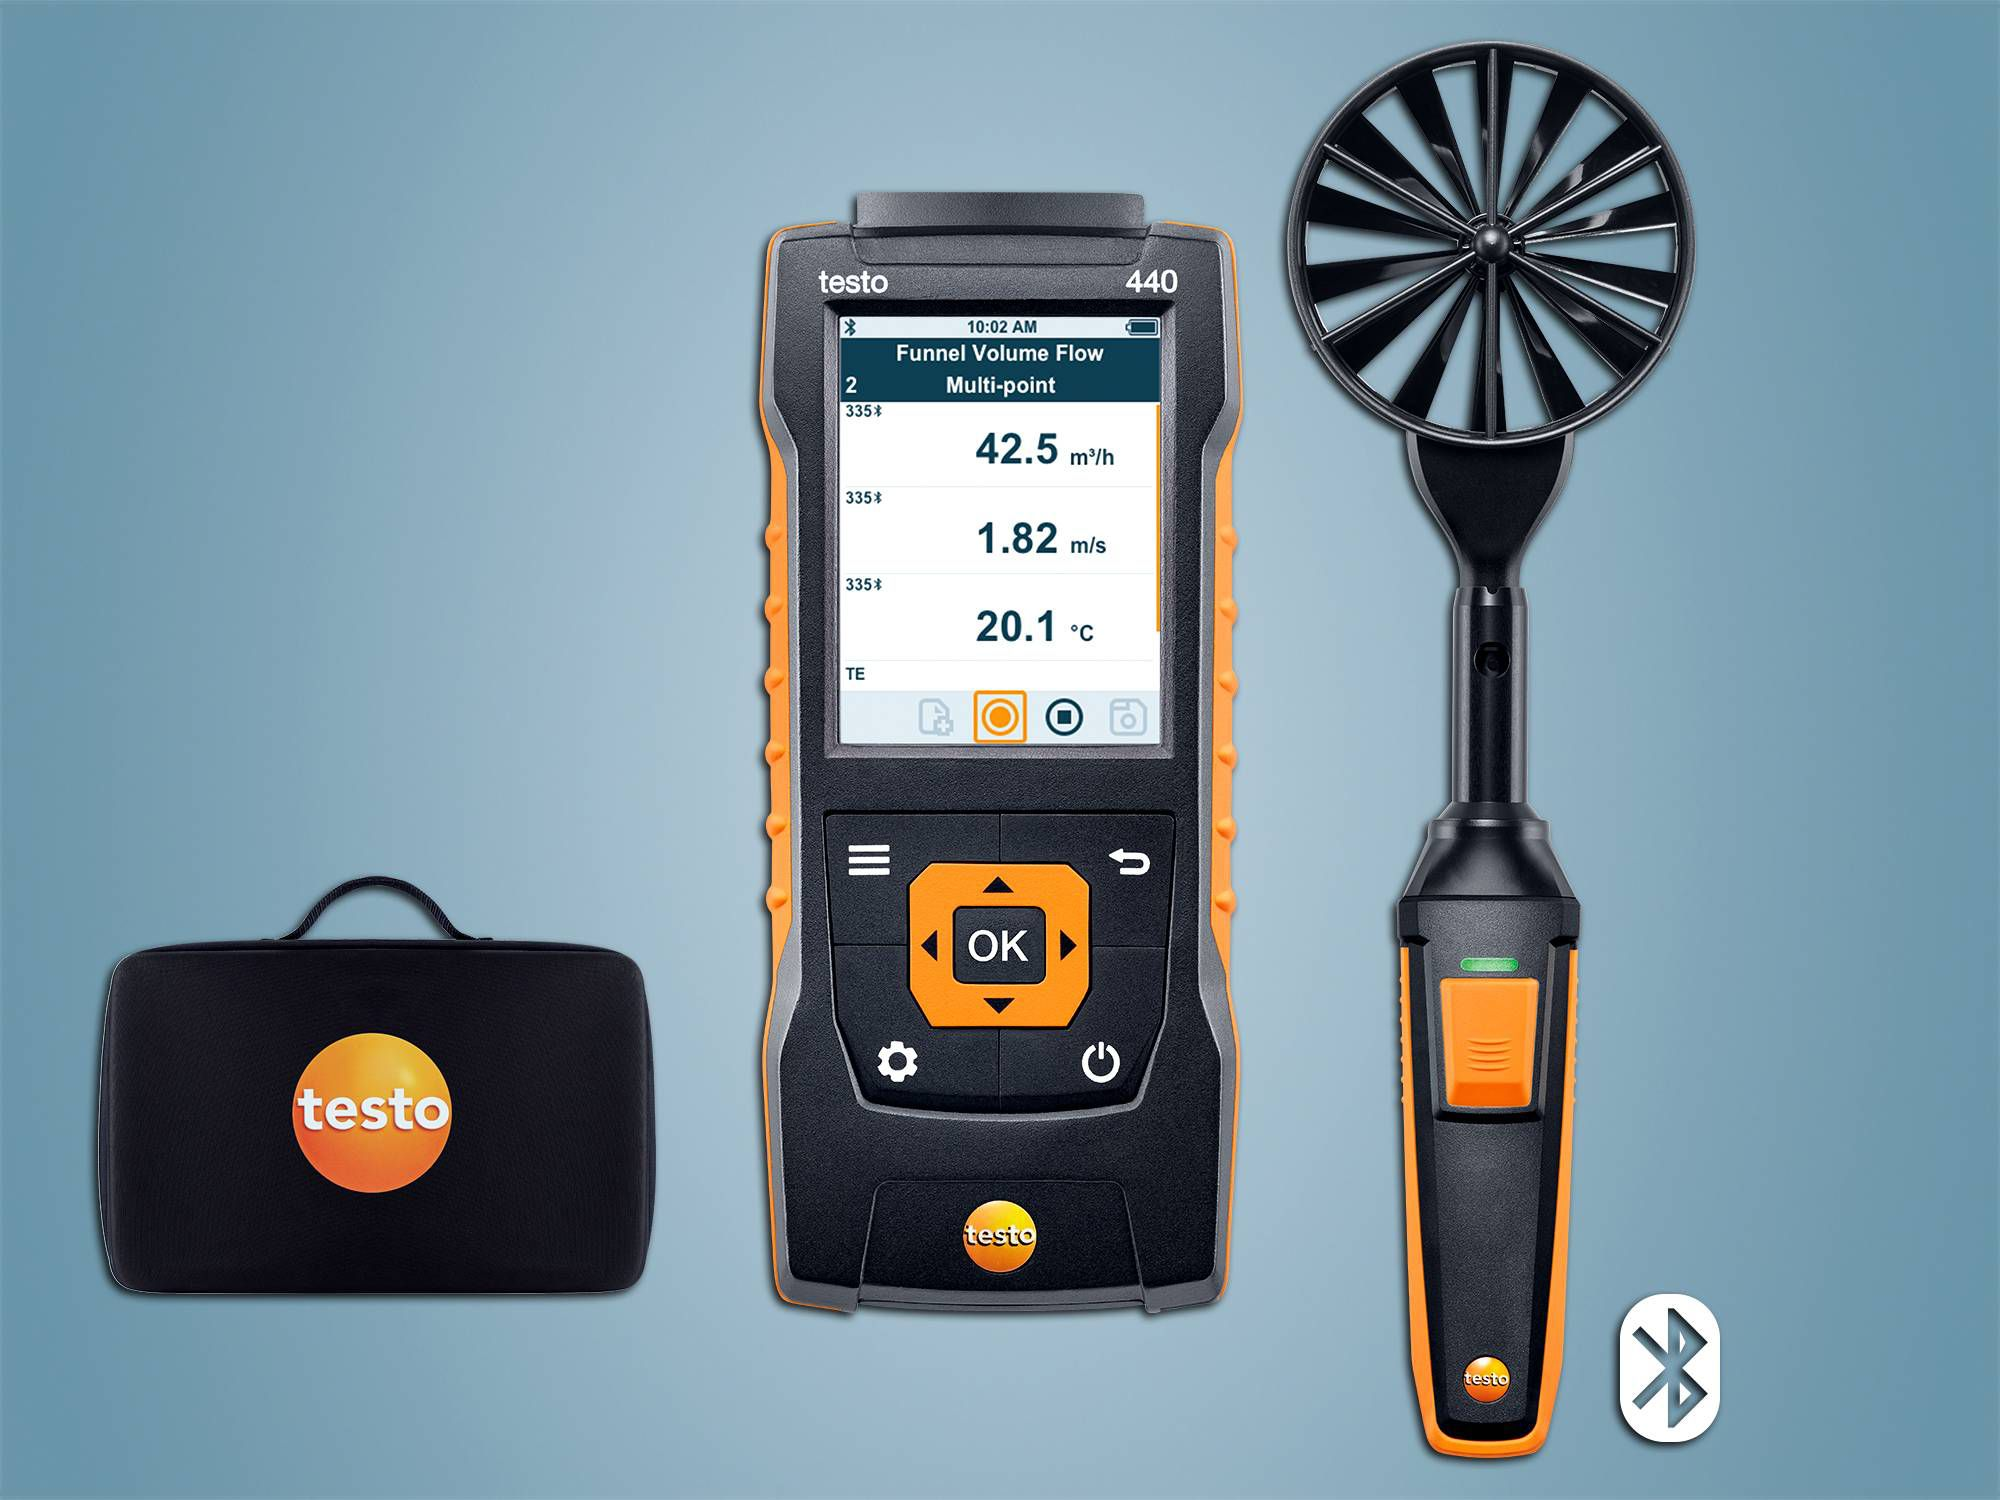 testo 440 100 mm Vane Kit with Bluetooth